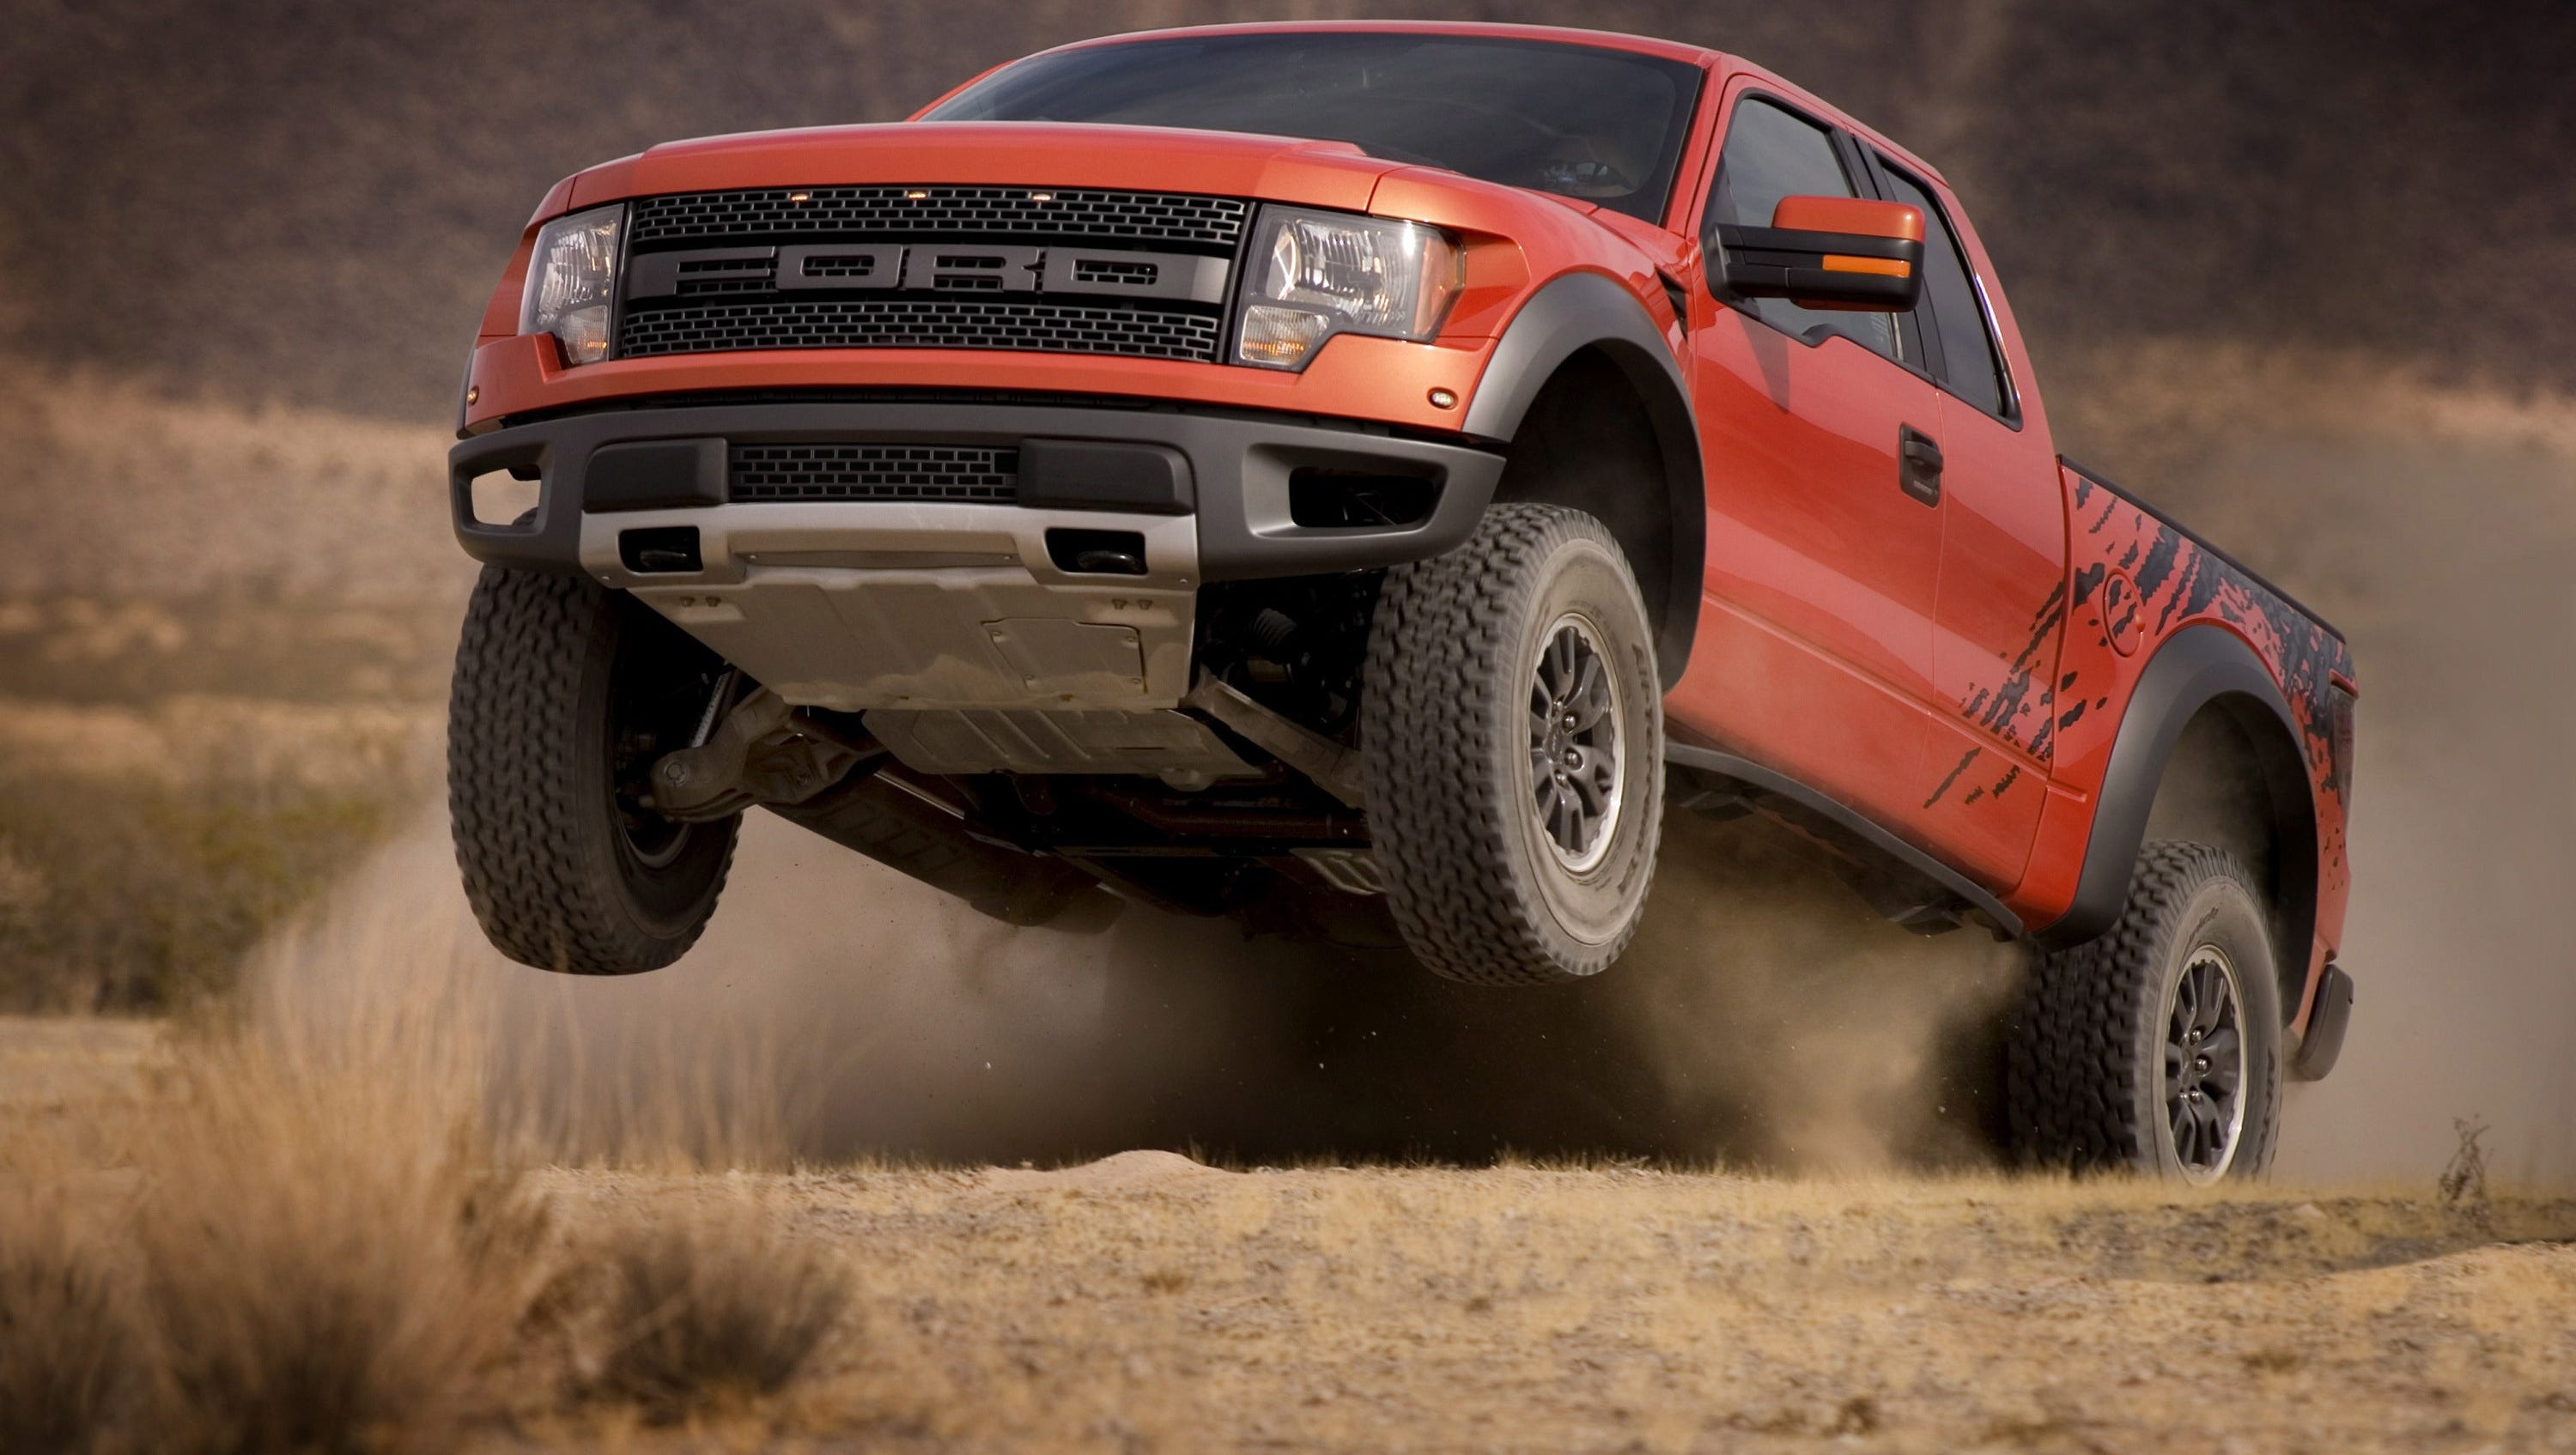 A Ford F-150 SVT Raptor taps into the off-road enthusiast market, both the desert and the ice and snow